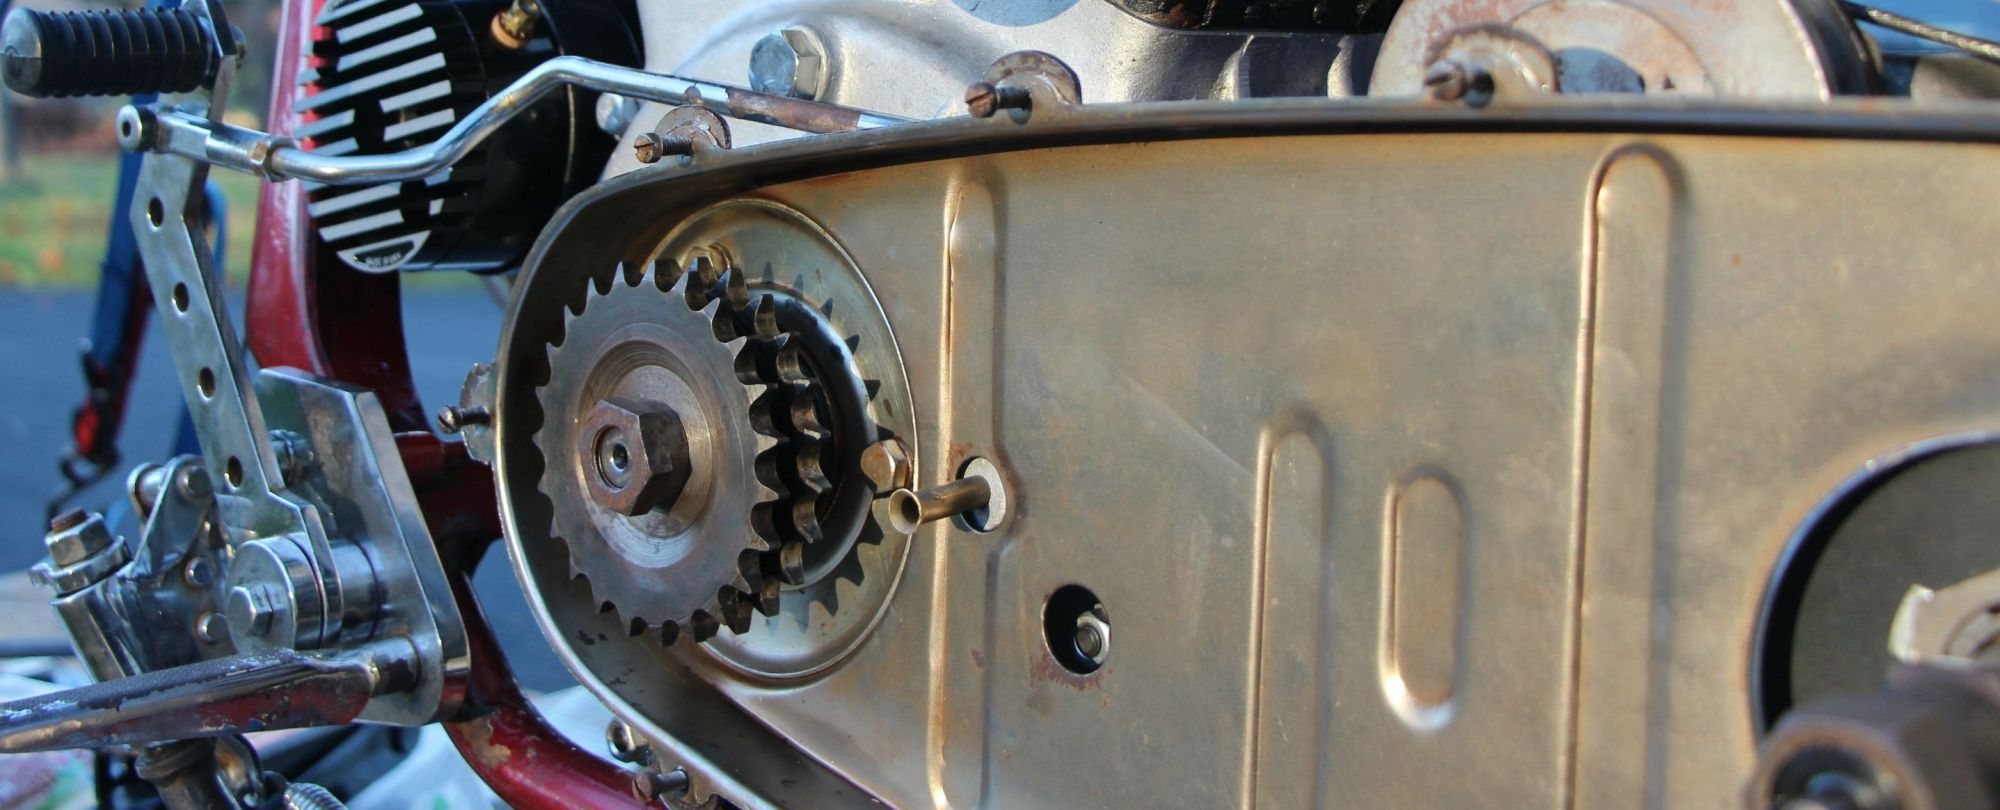 hight resolution of why things are the way they are why harleys leak